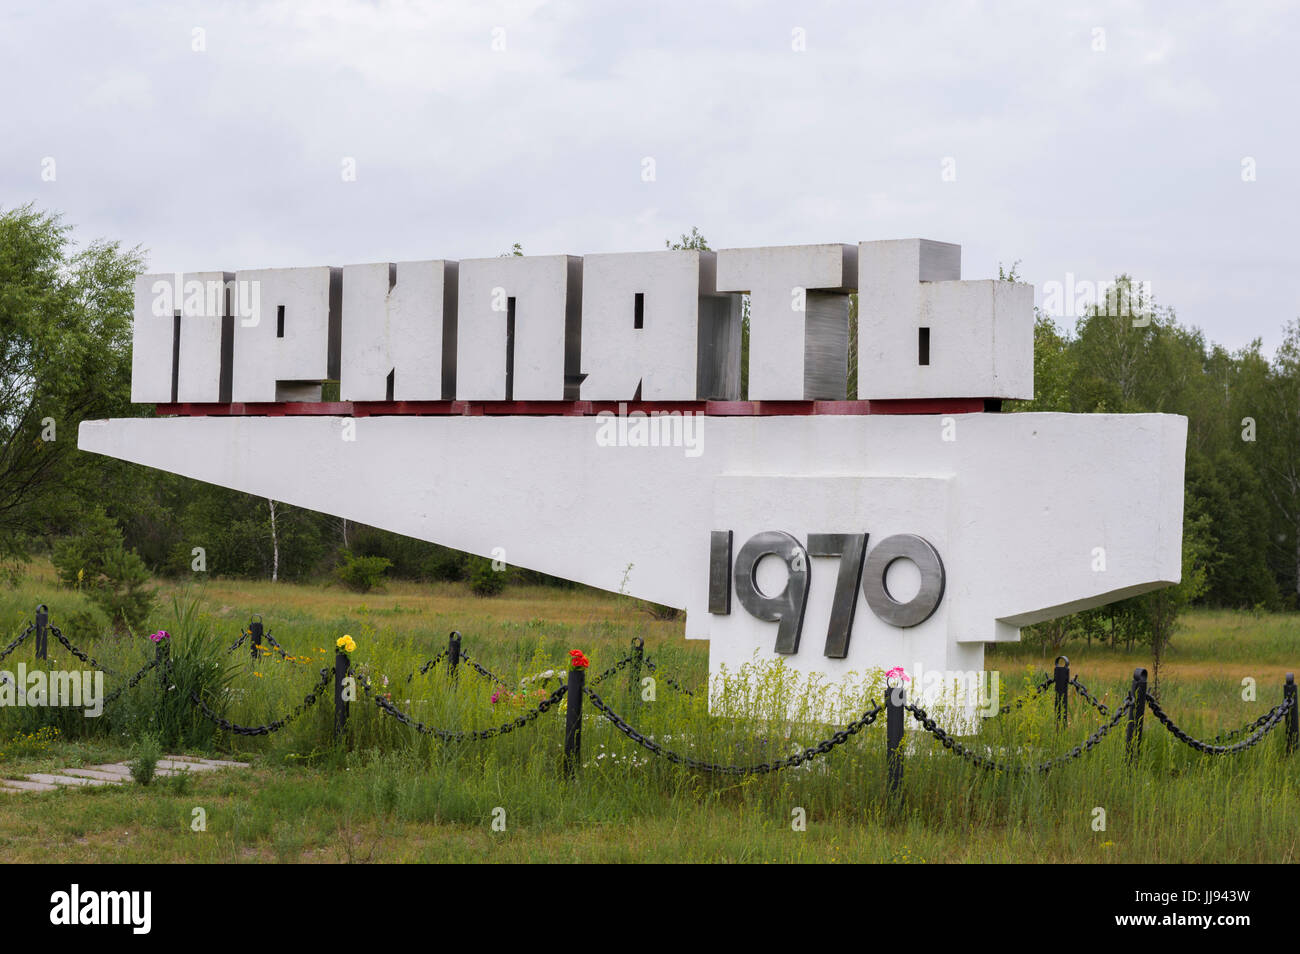 Pripyat City Sign in Chernobyl Exclusion Zone - Stock Image